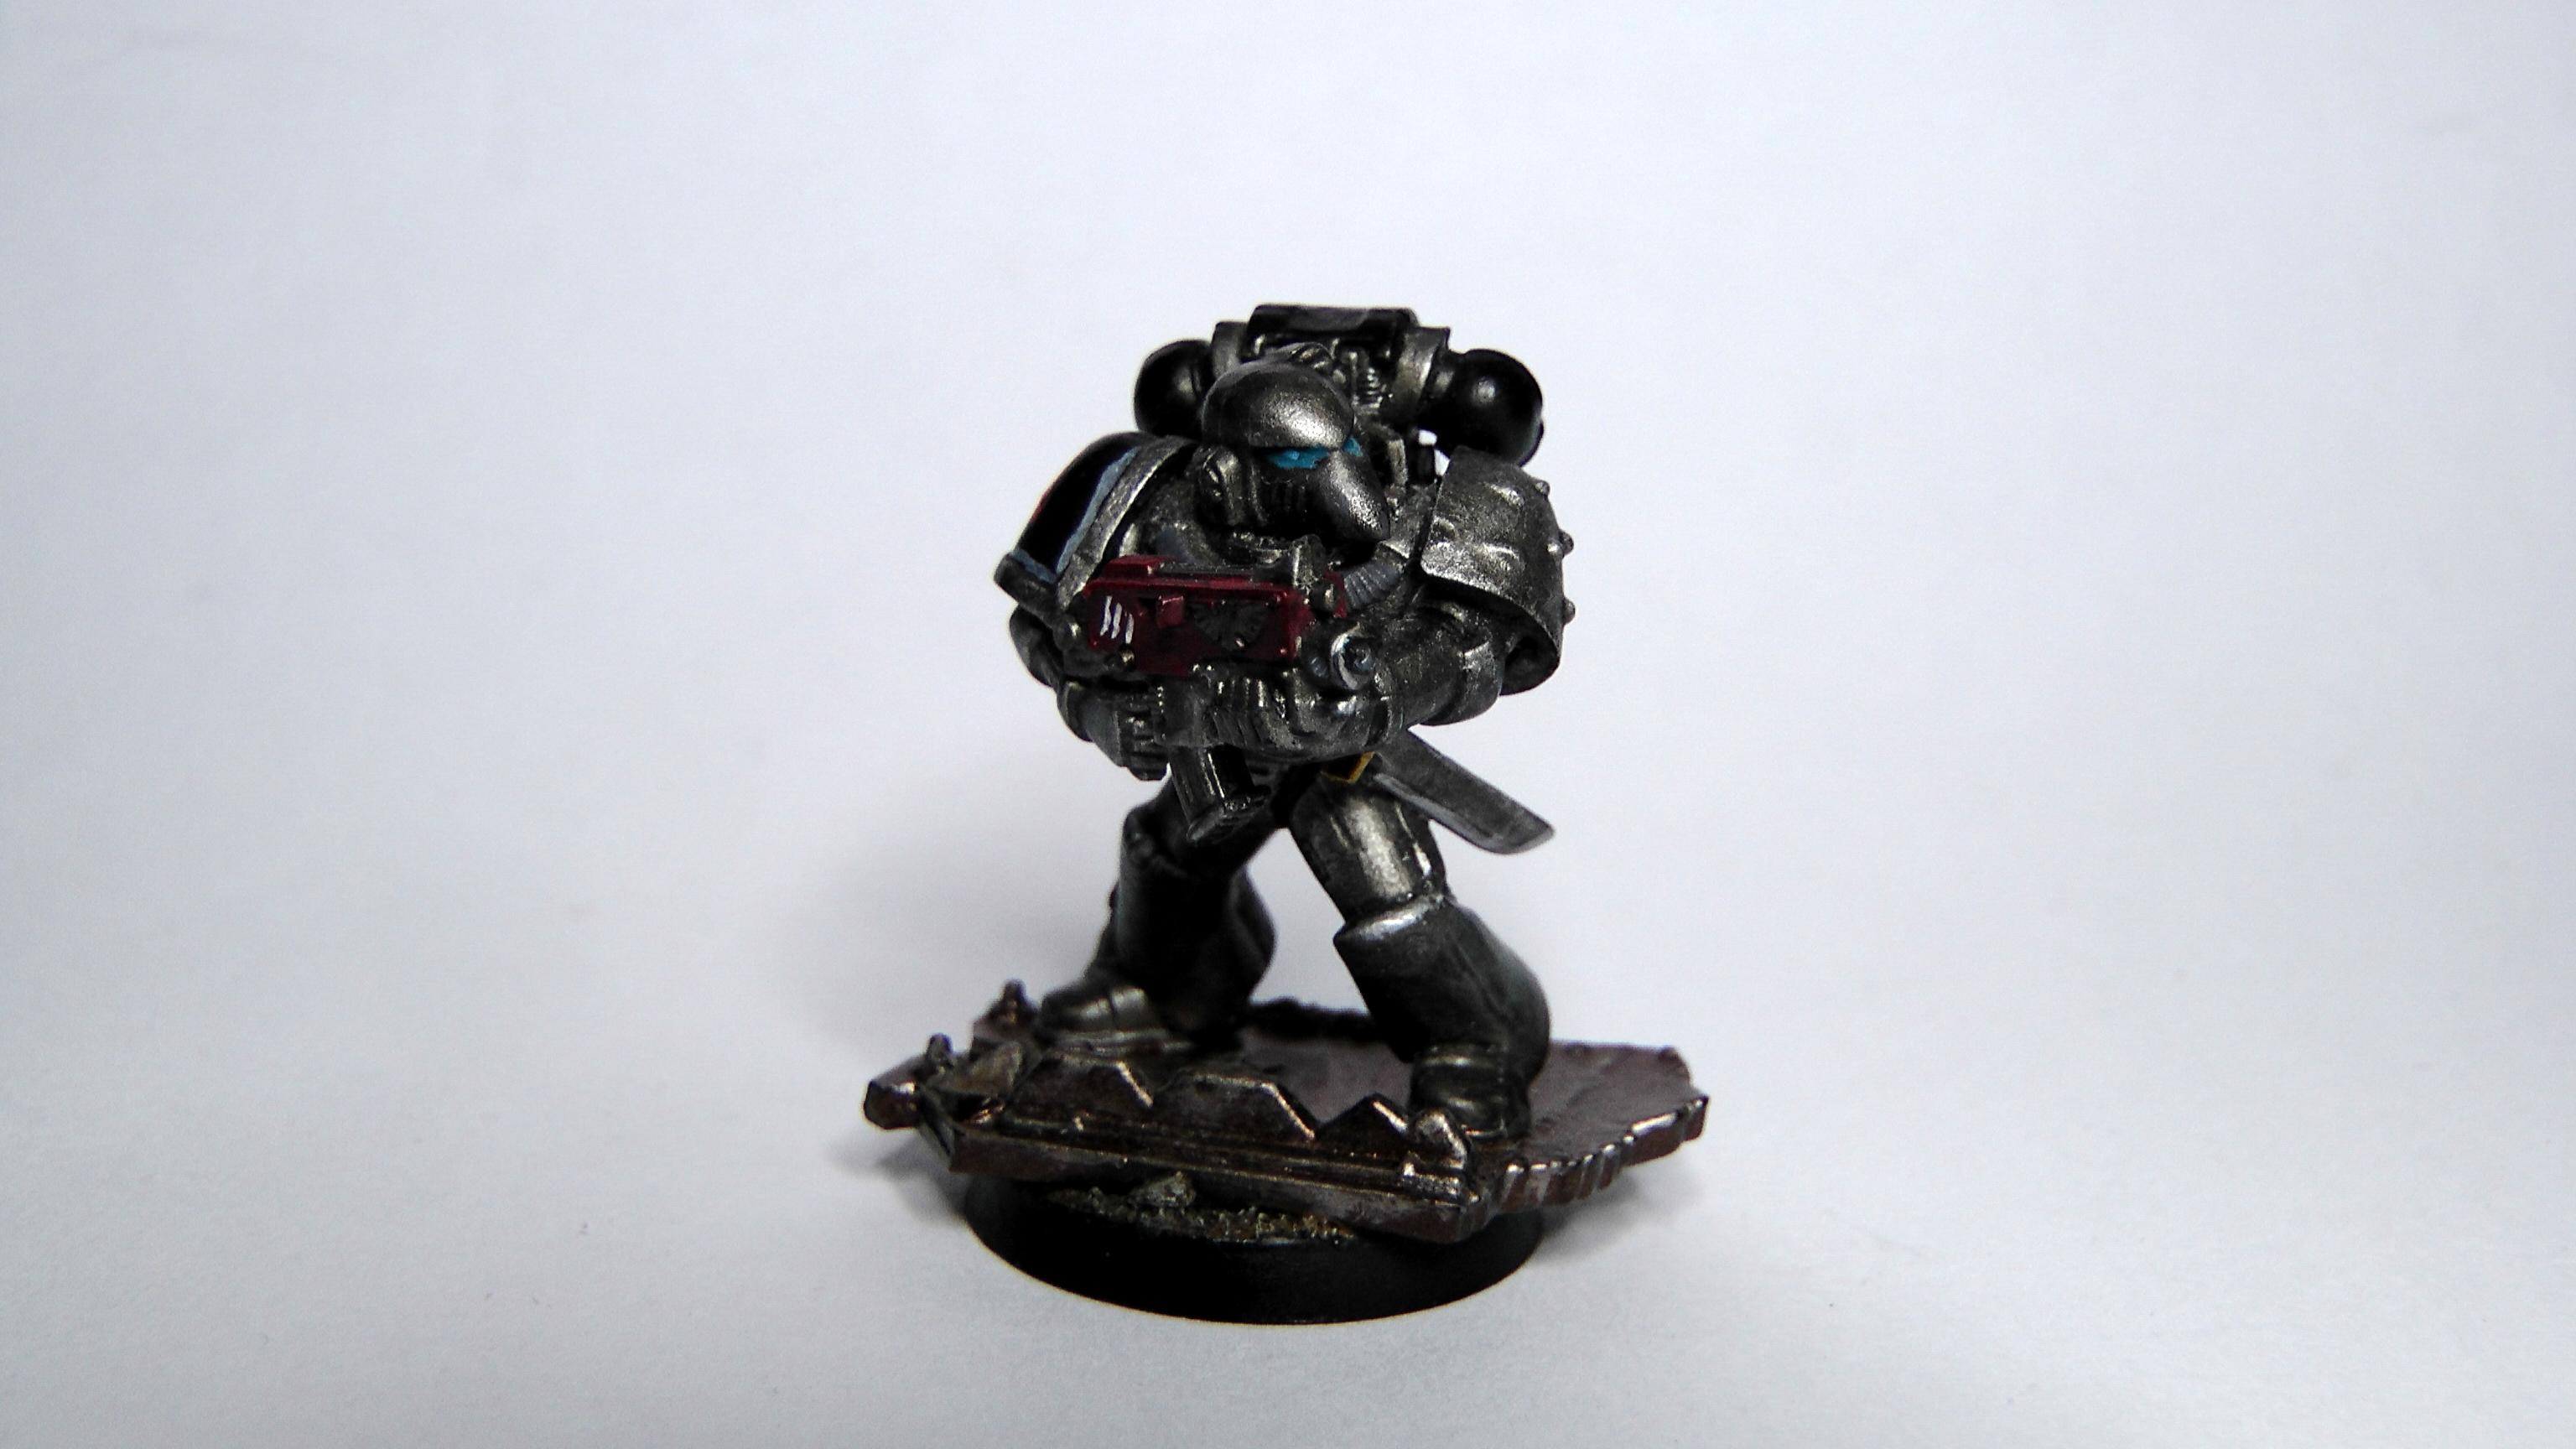 Boltgun, Corvus, Mk6, Silver Skulls, Space Marines, Tactical, Urban Base, Warhammer 40,000